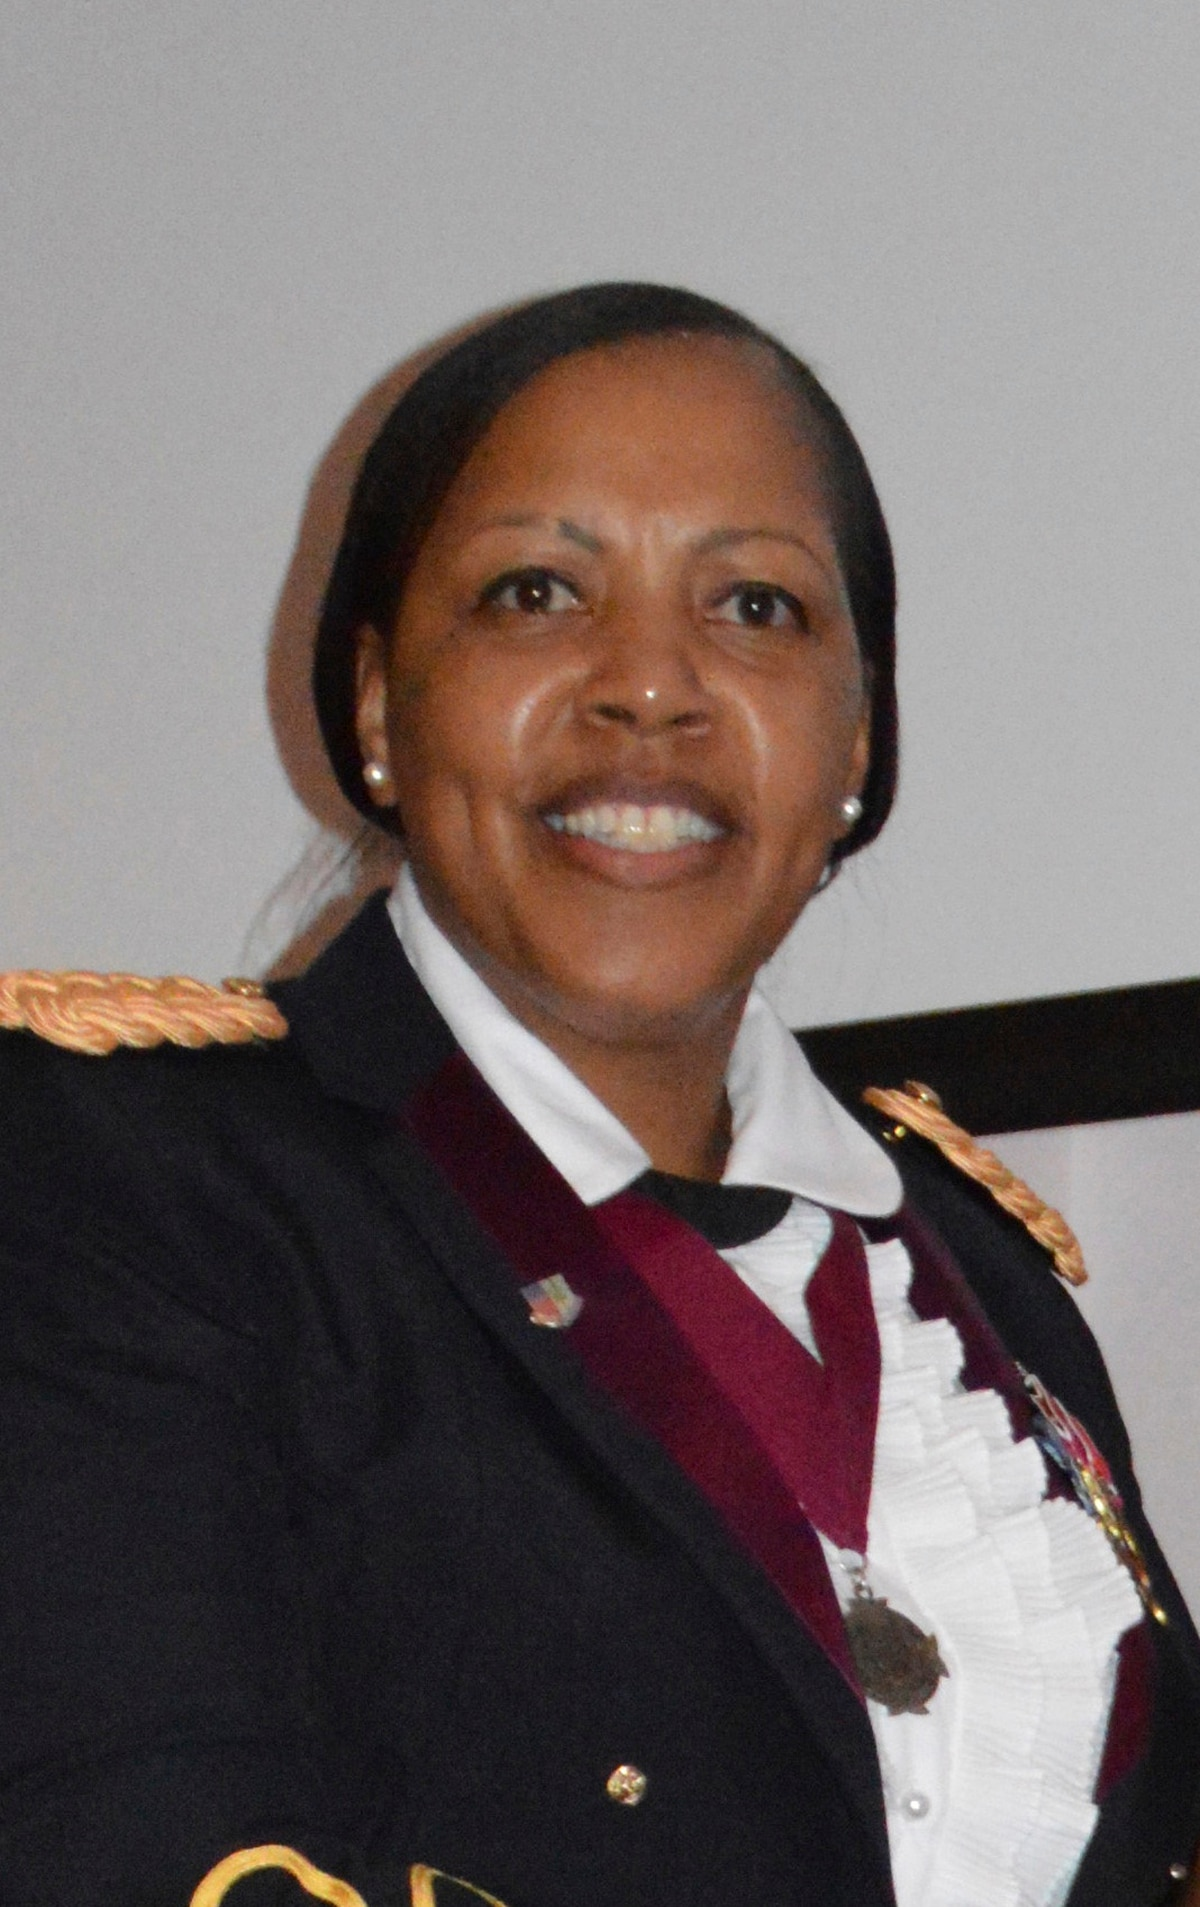 Investigation: Commander tried to fudge her tape test